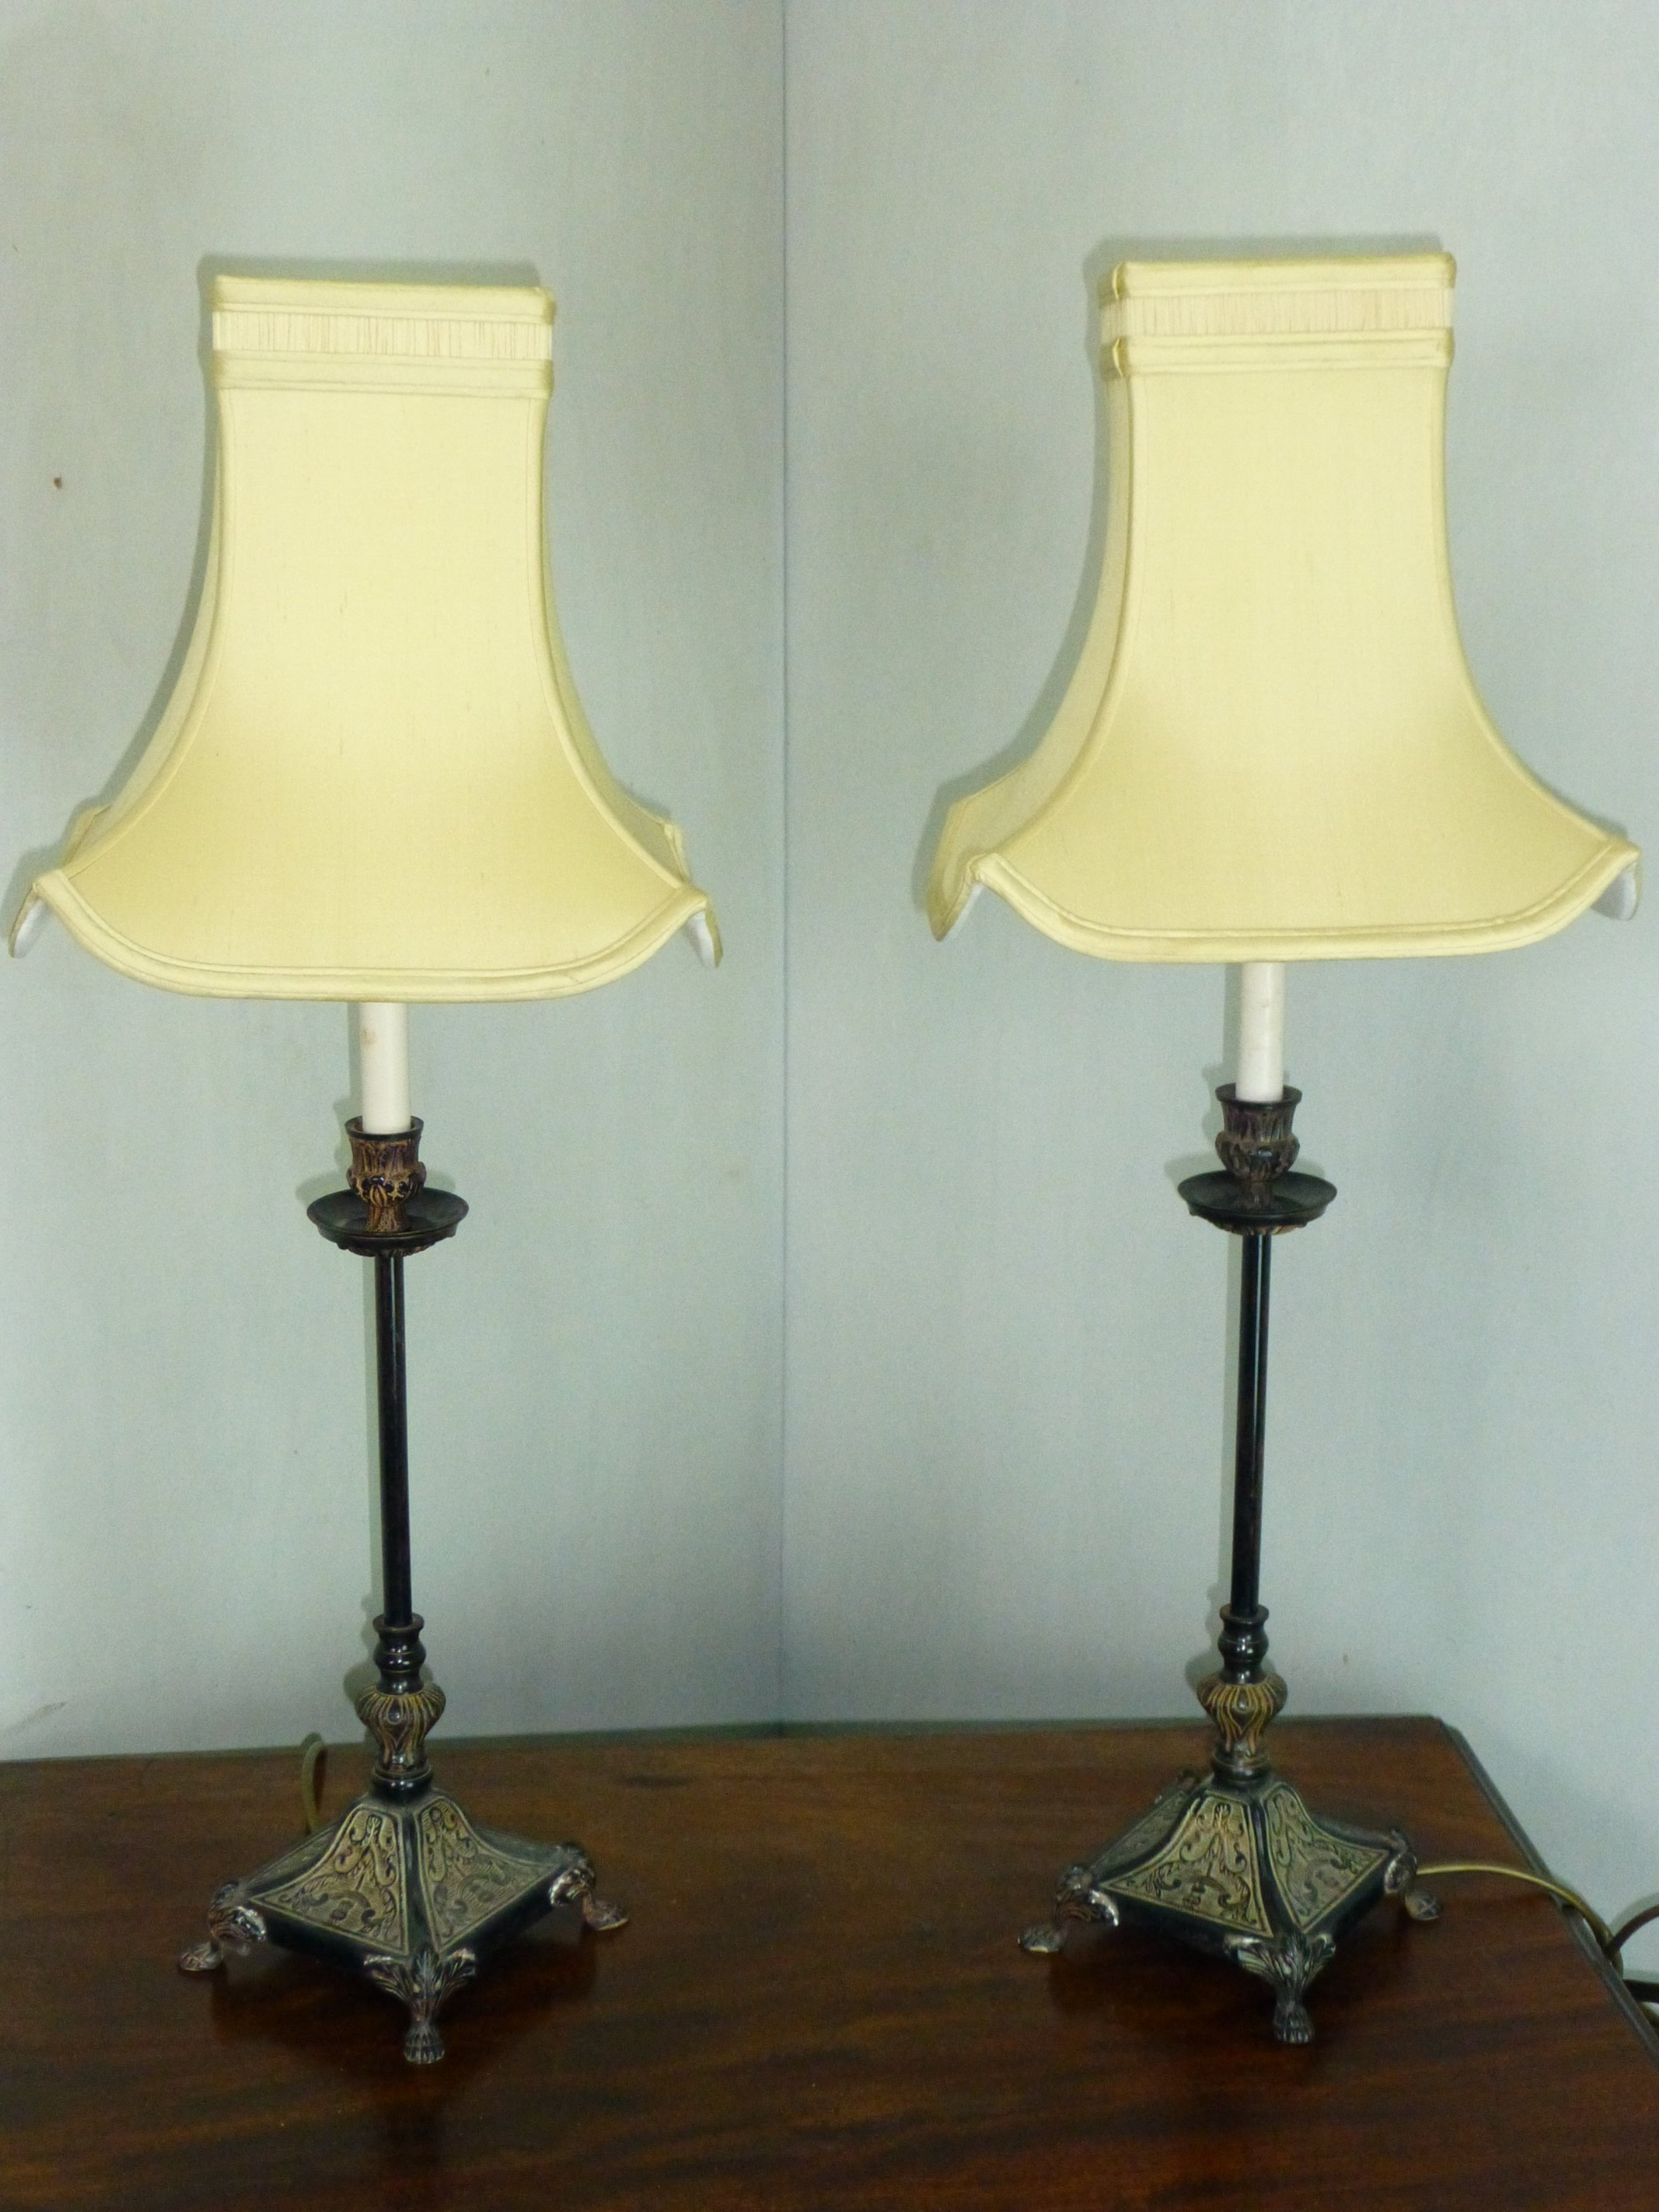 a pair of early 20th century bronzed table lamps